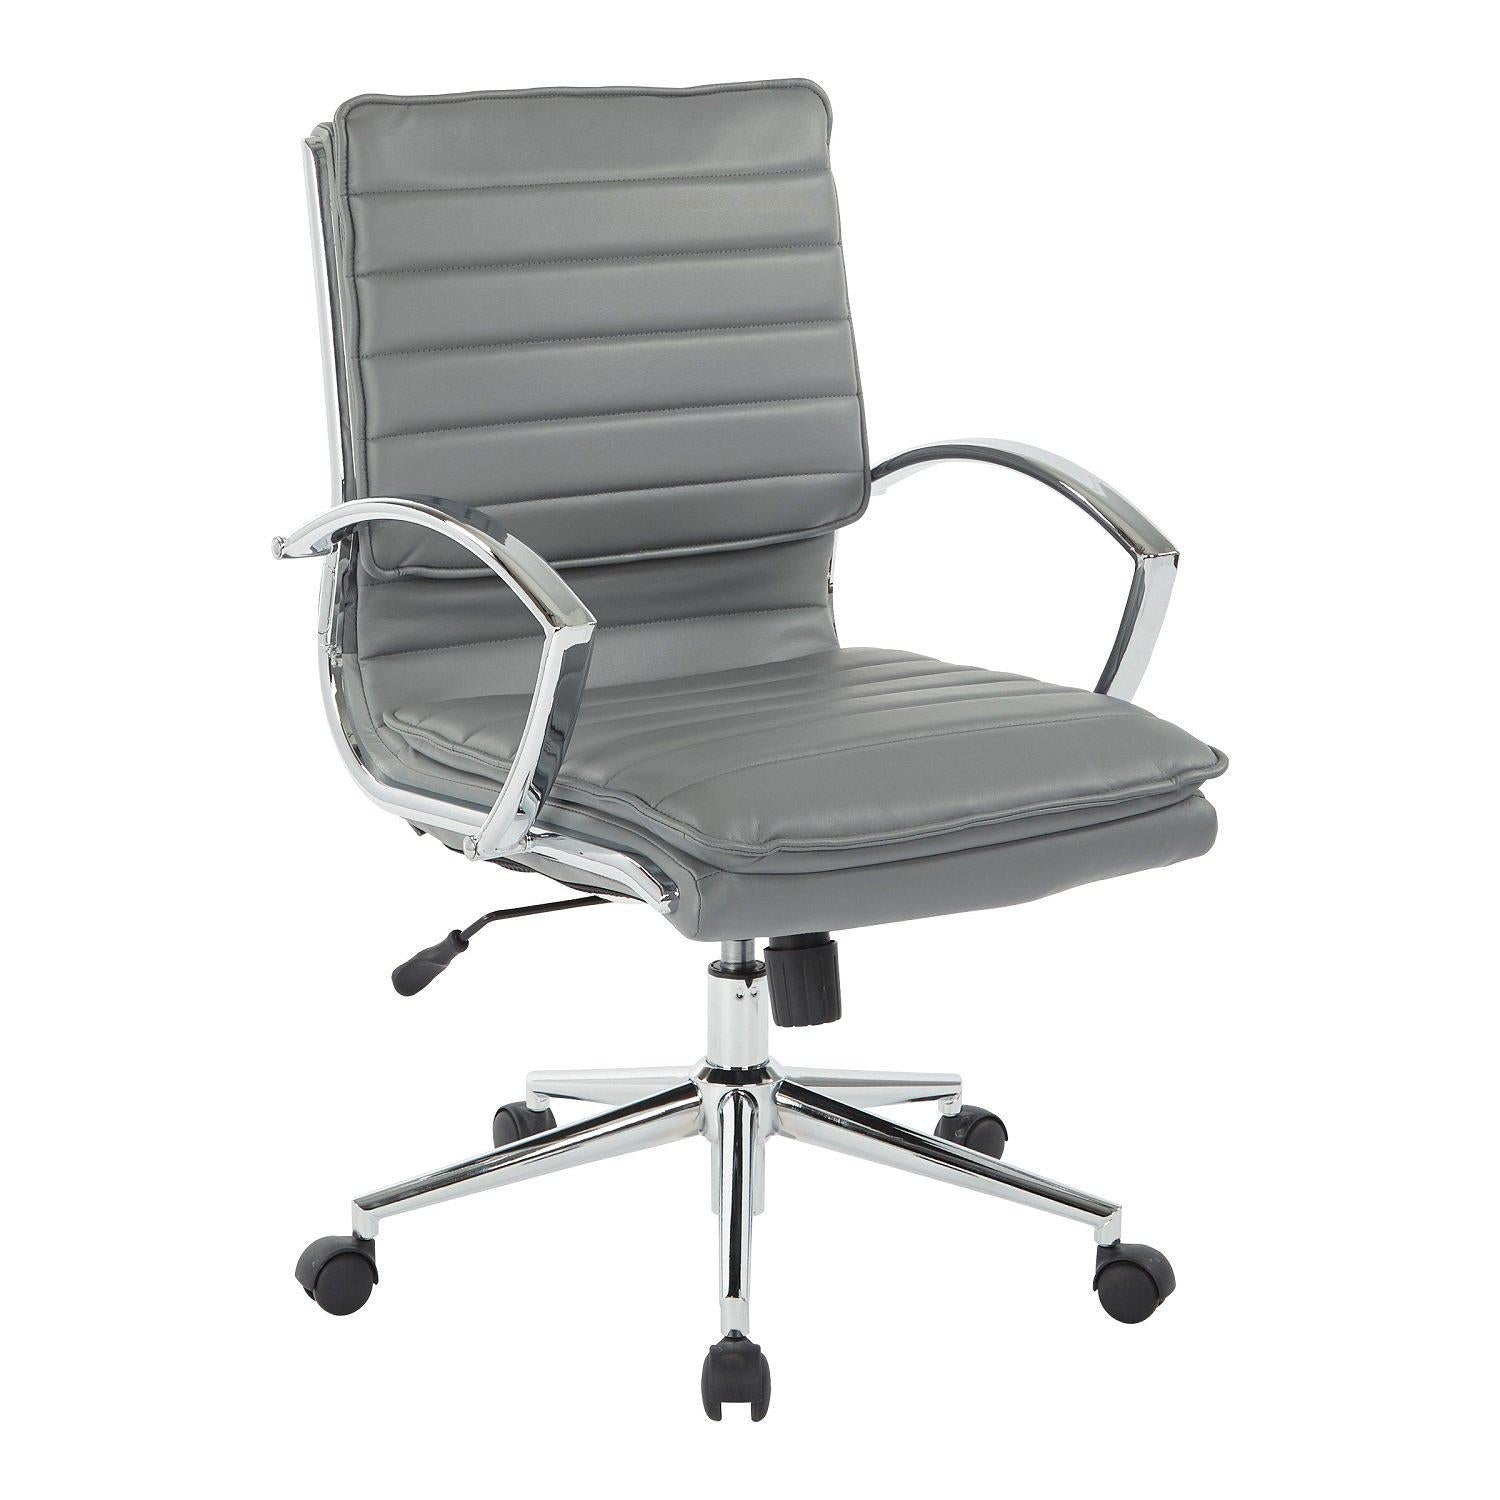 Mid Back Faux Leather Manager's Chair with Chrome Arms & Base